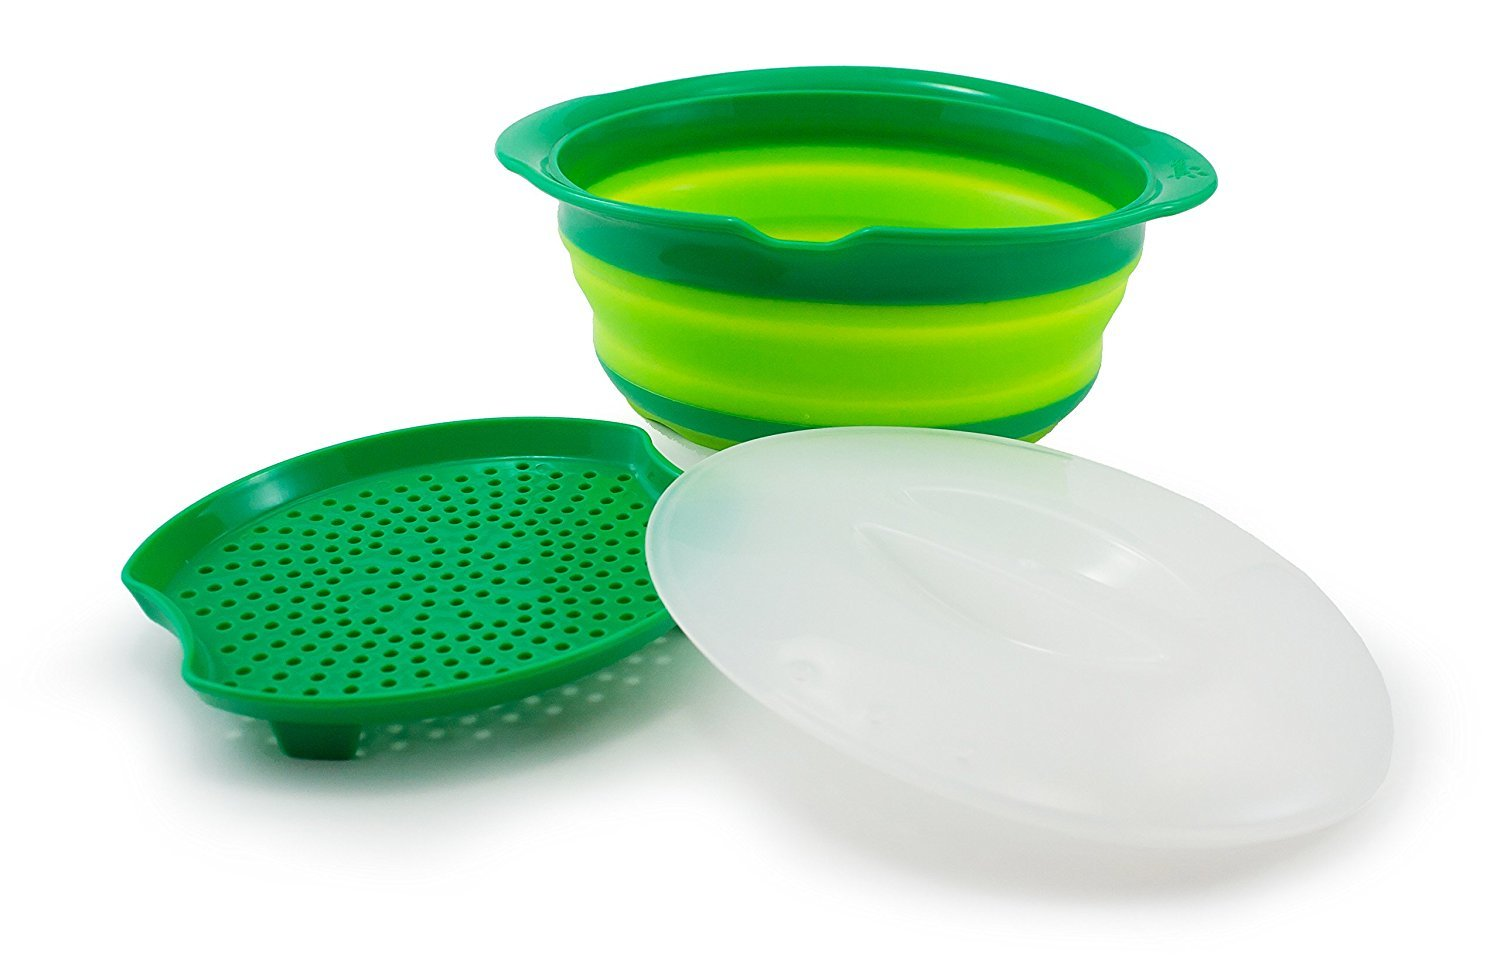 Squish Collapsible Microwave Steamer, Green